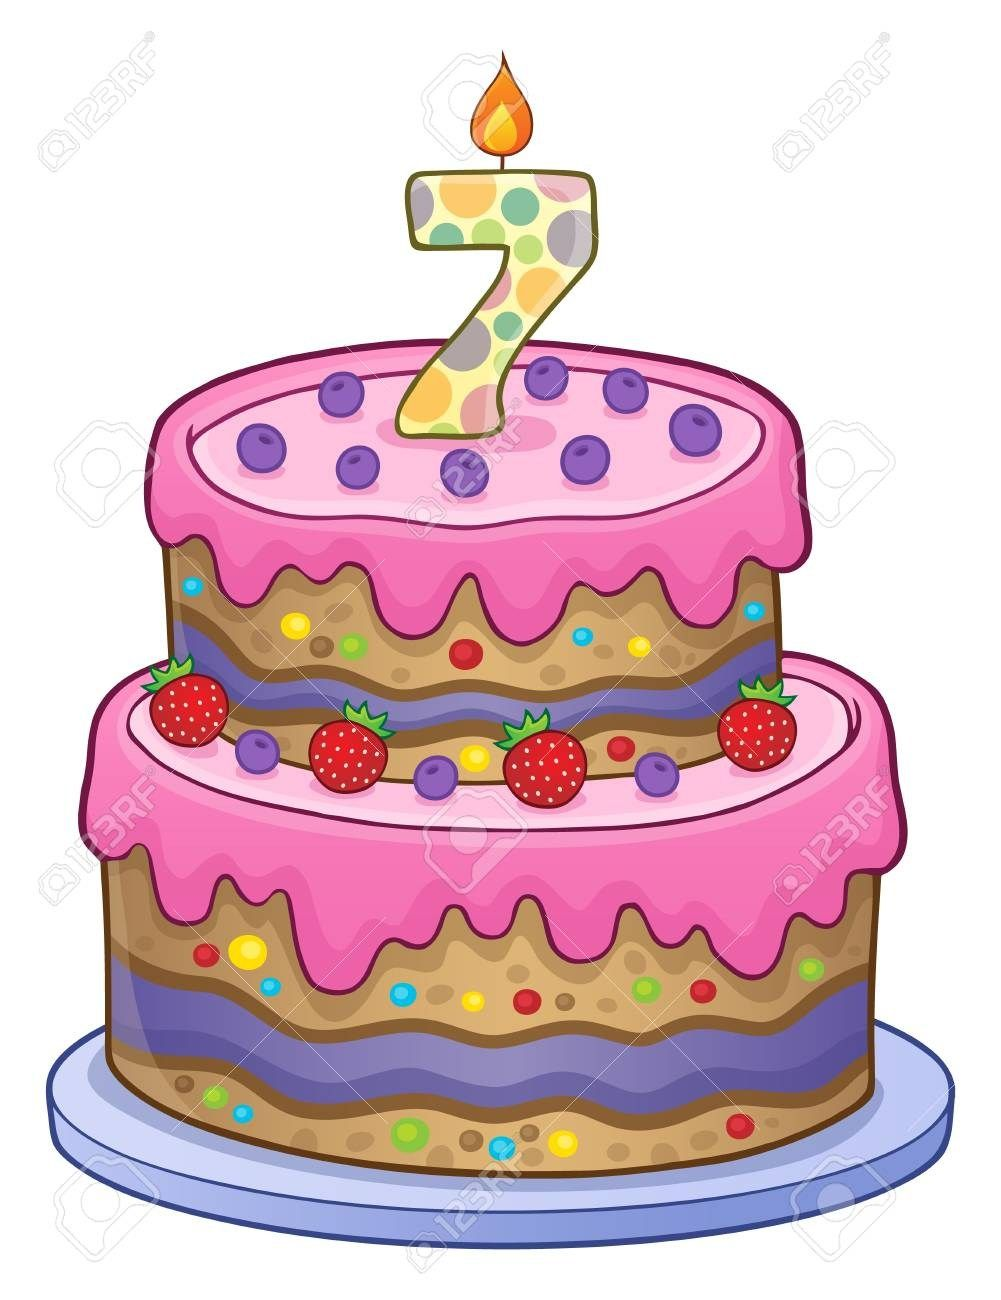 32+ Exclusive Picture of 7 Year Old Birthday Cake.